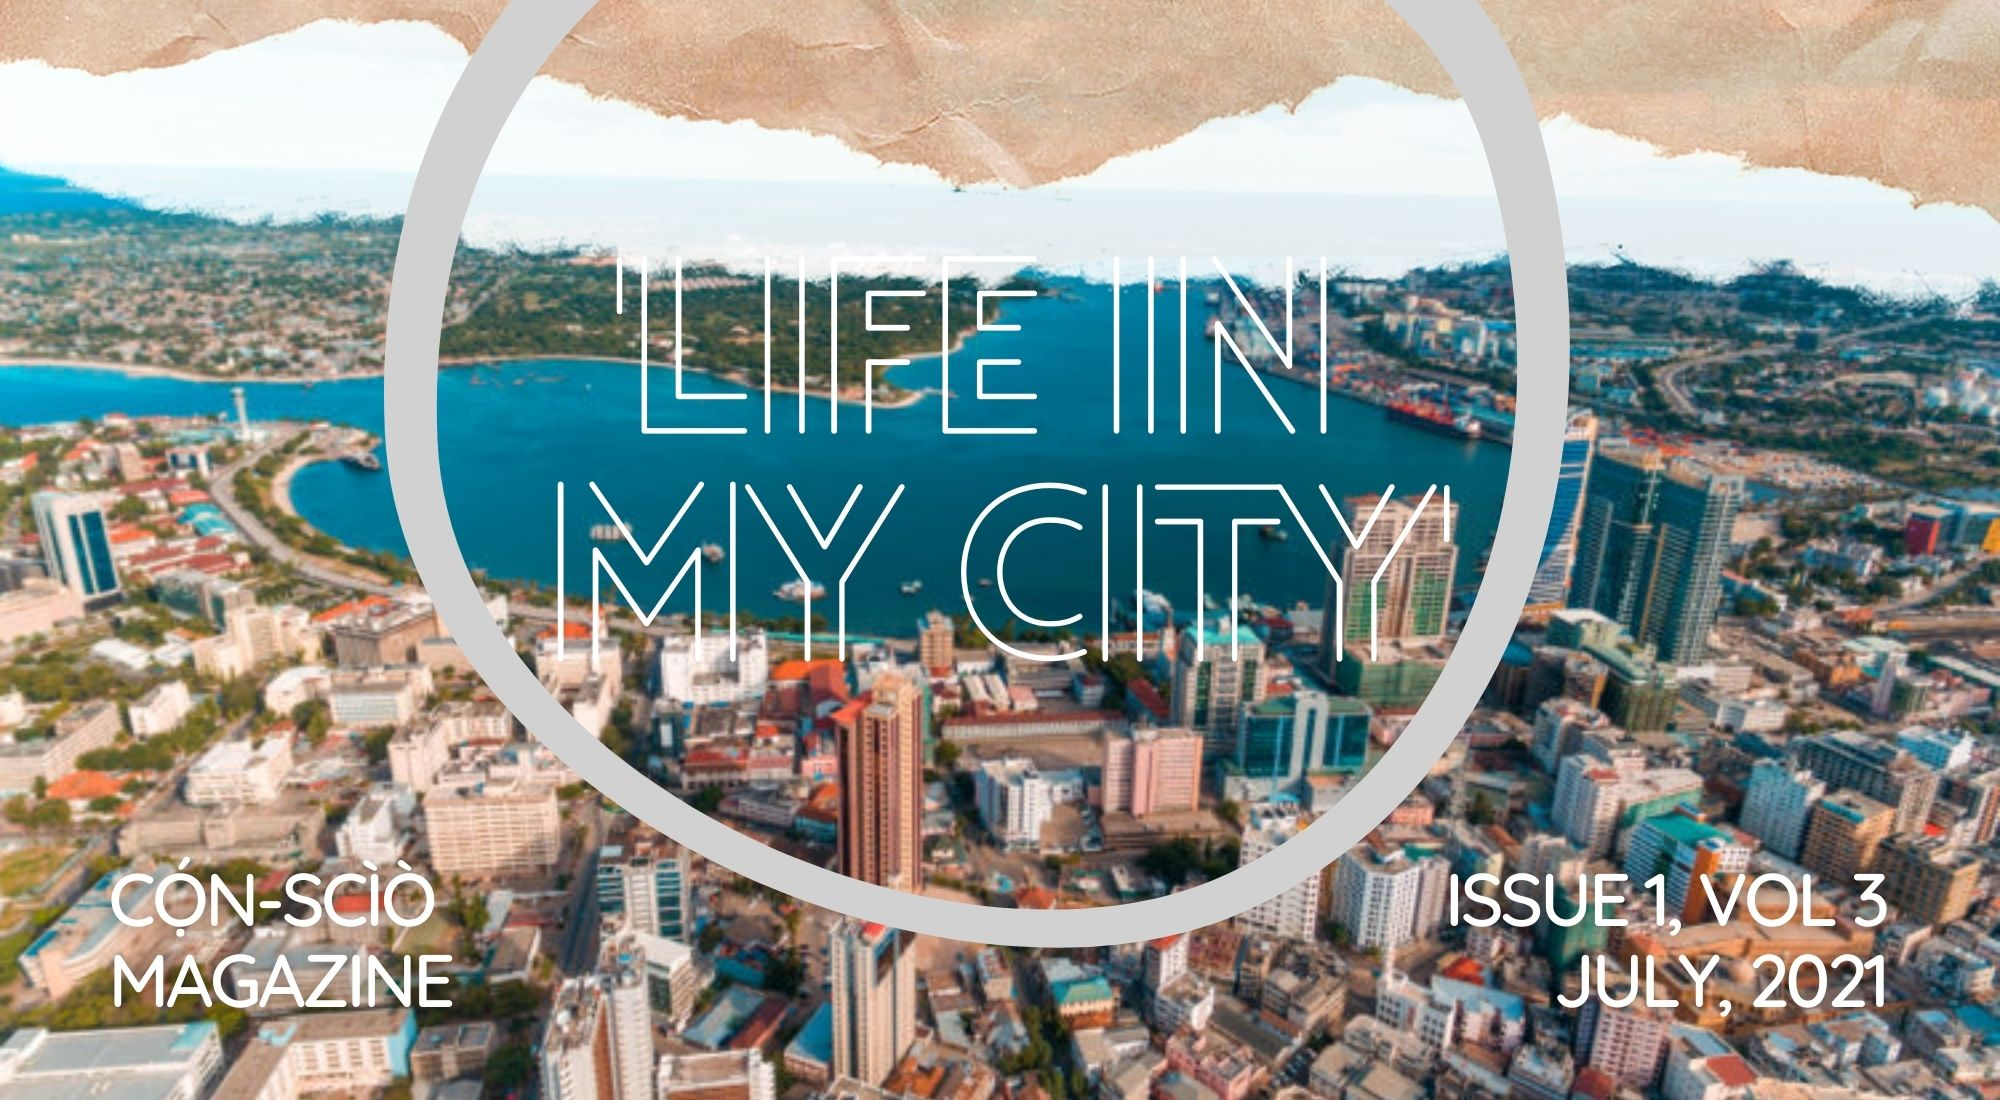 CALL FOR SUBMISSIONS: 'LIFE IN MY CITY' — CỌ́N-SCÌÒ MAGAZINE ISSUE 1, VOL 3, JULY 2021